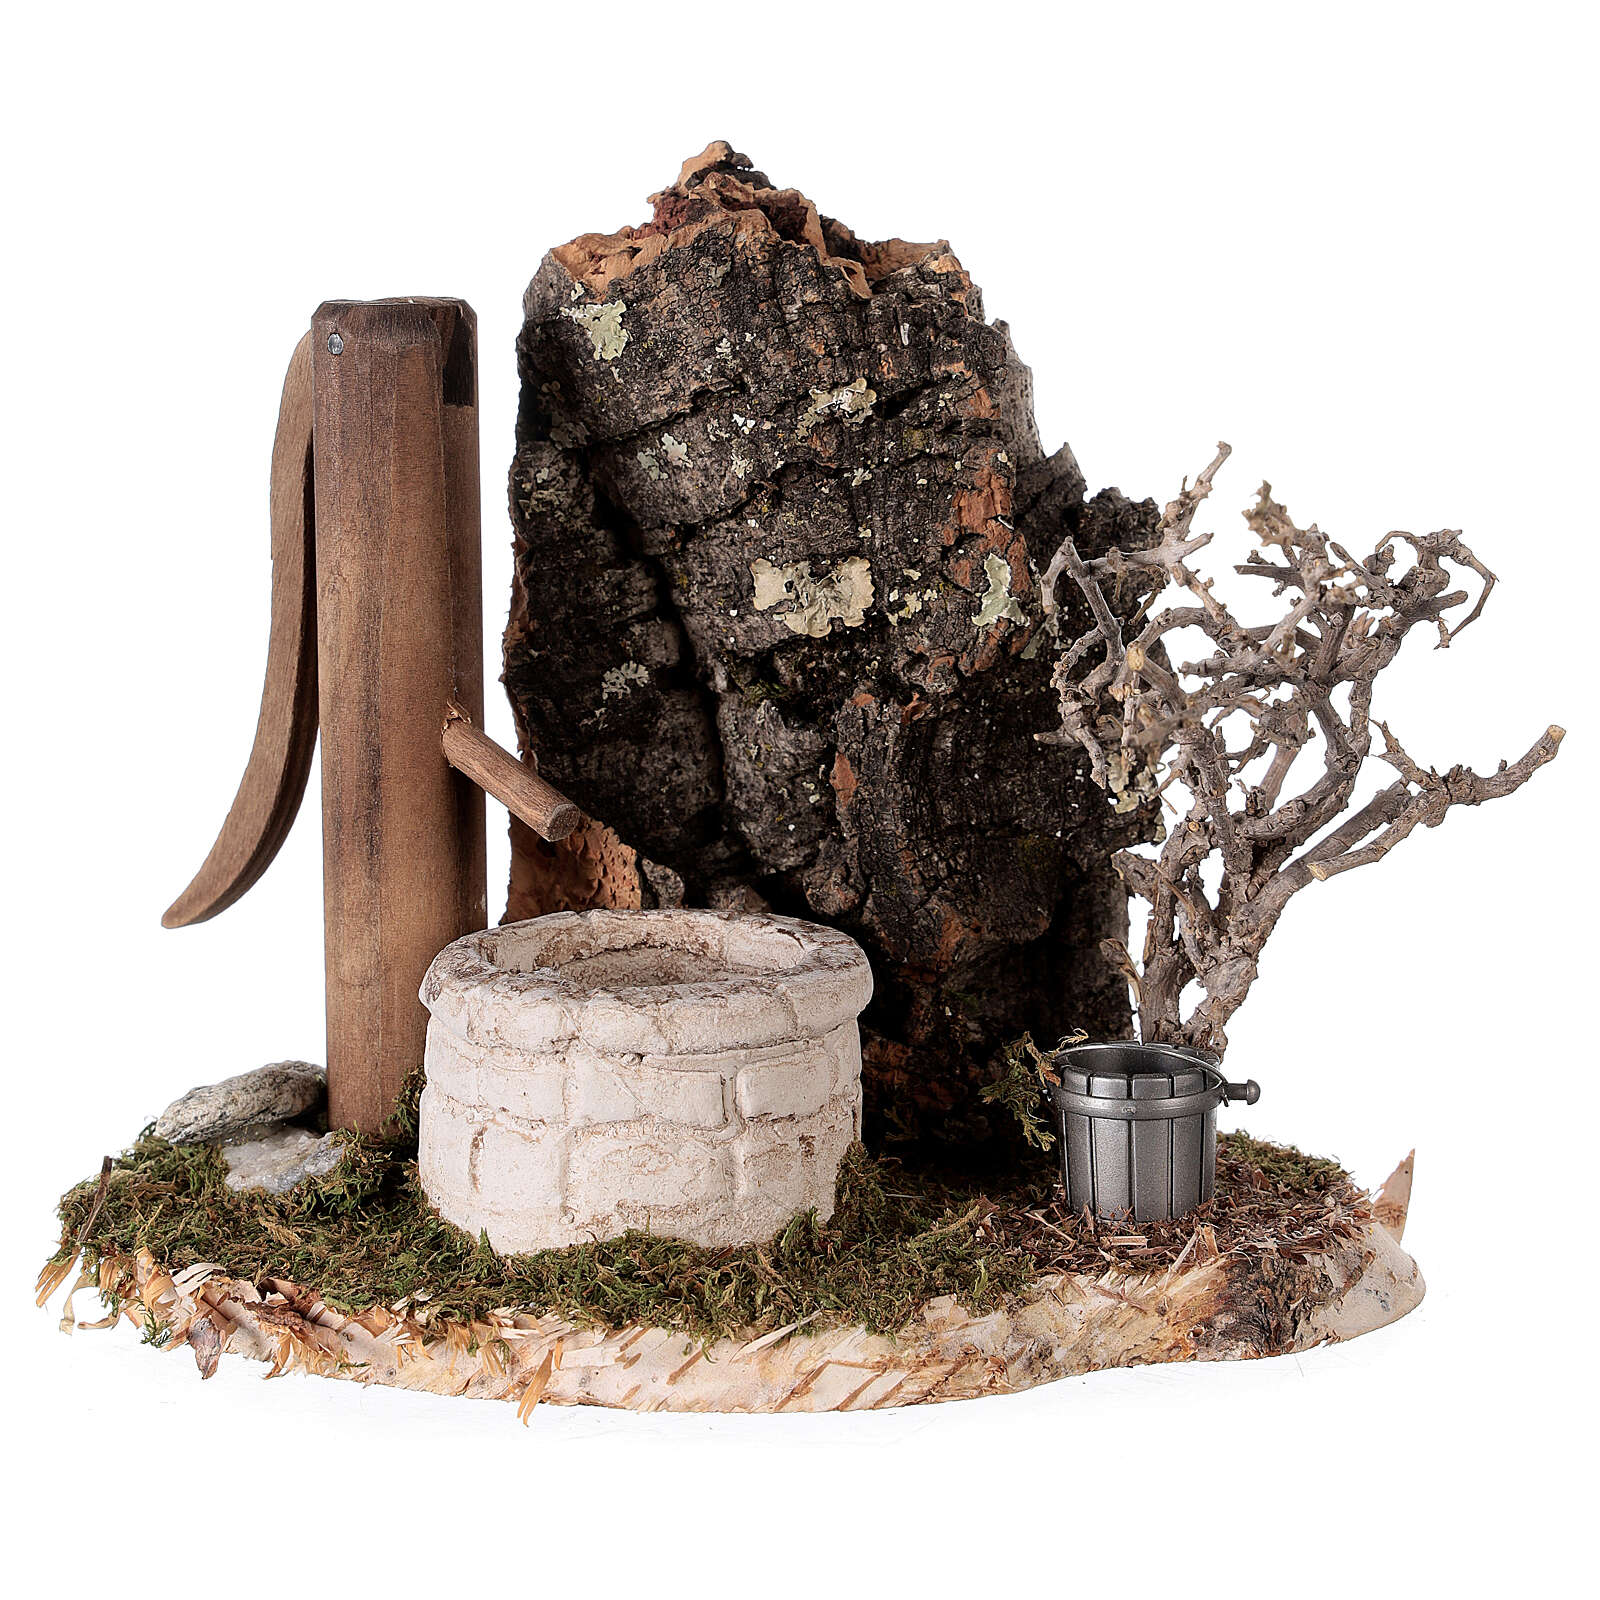 Faux fountain Nordic style 15x15x10 cm for 8-10-12 cm nativity 4